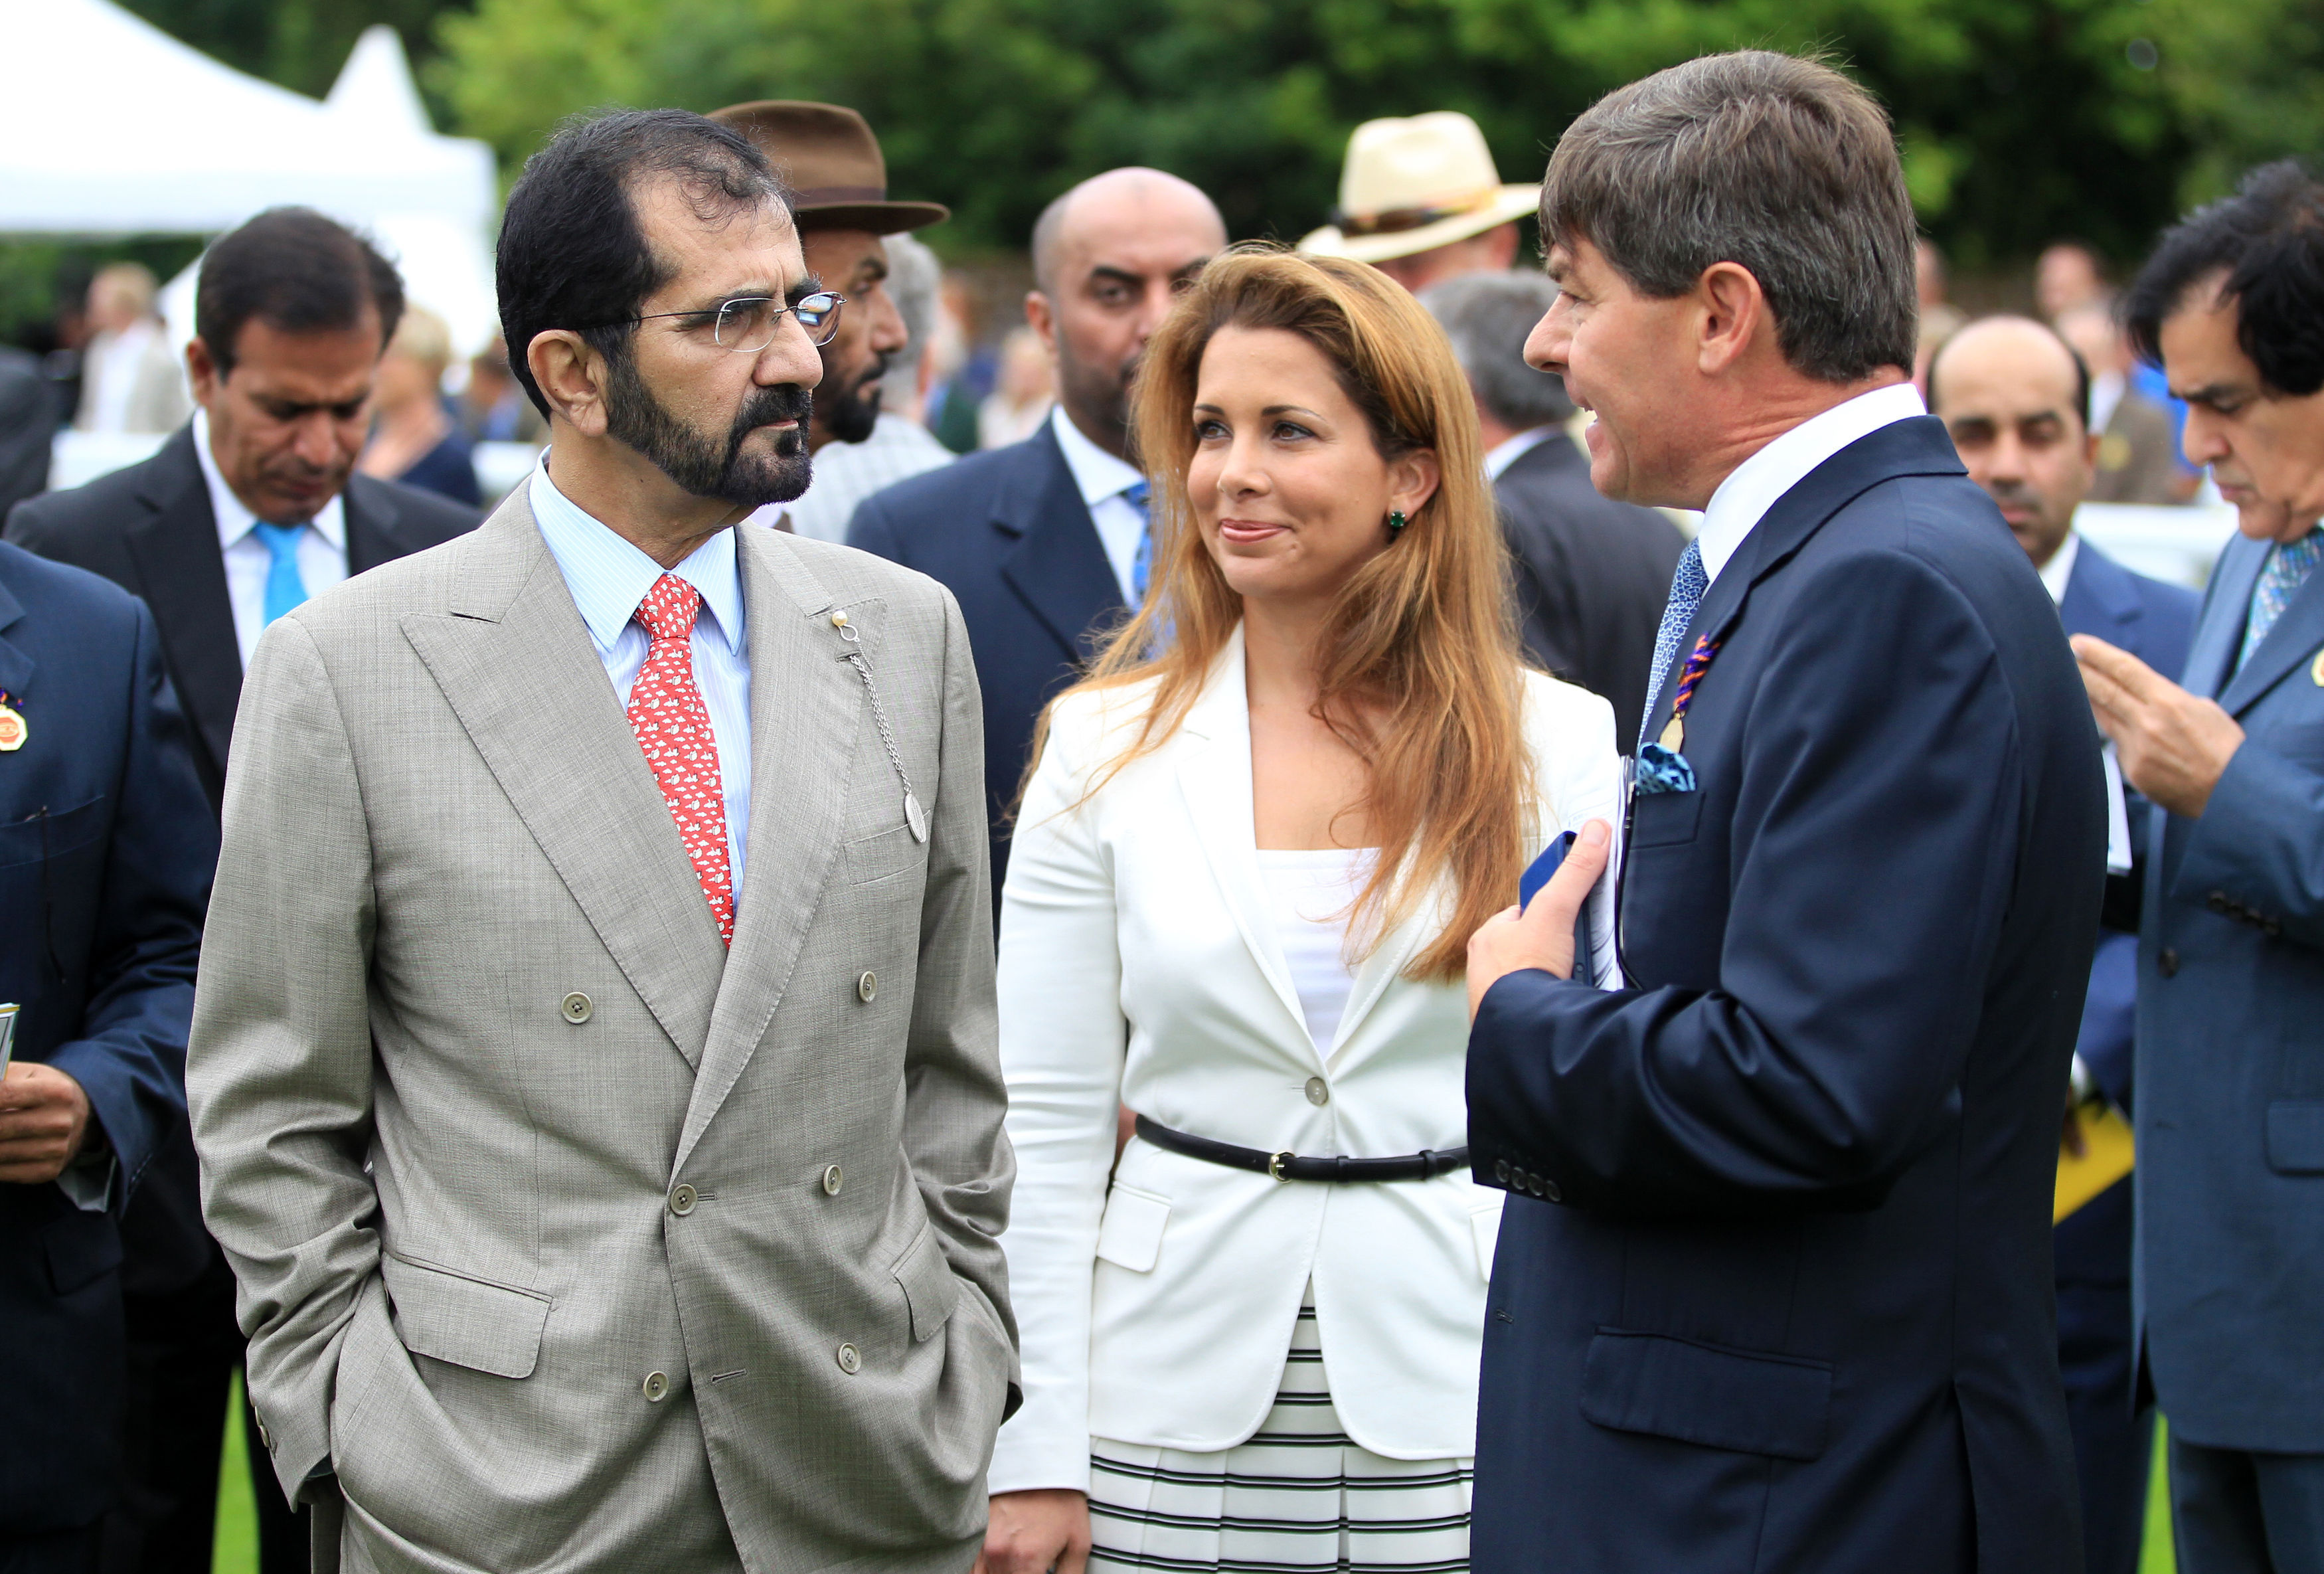 Dubai Ruler's Wife 'Takes £31 Million To Start New Life' After